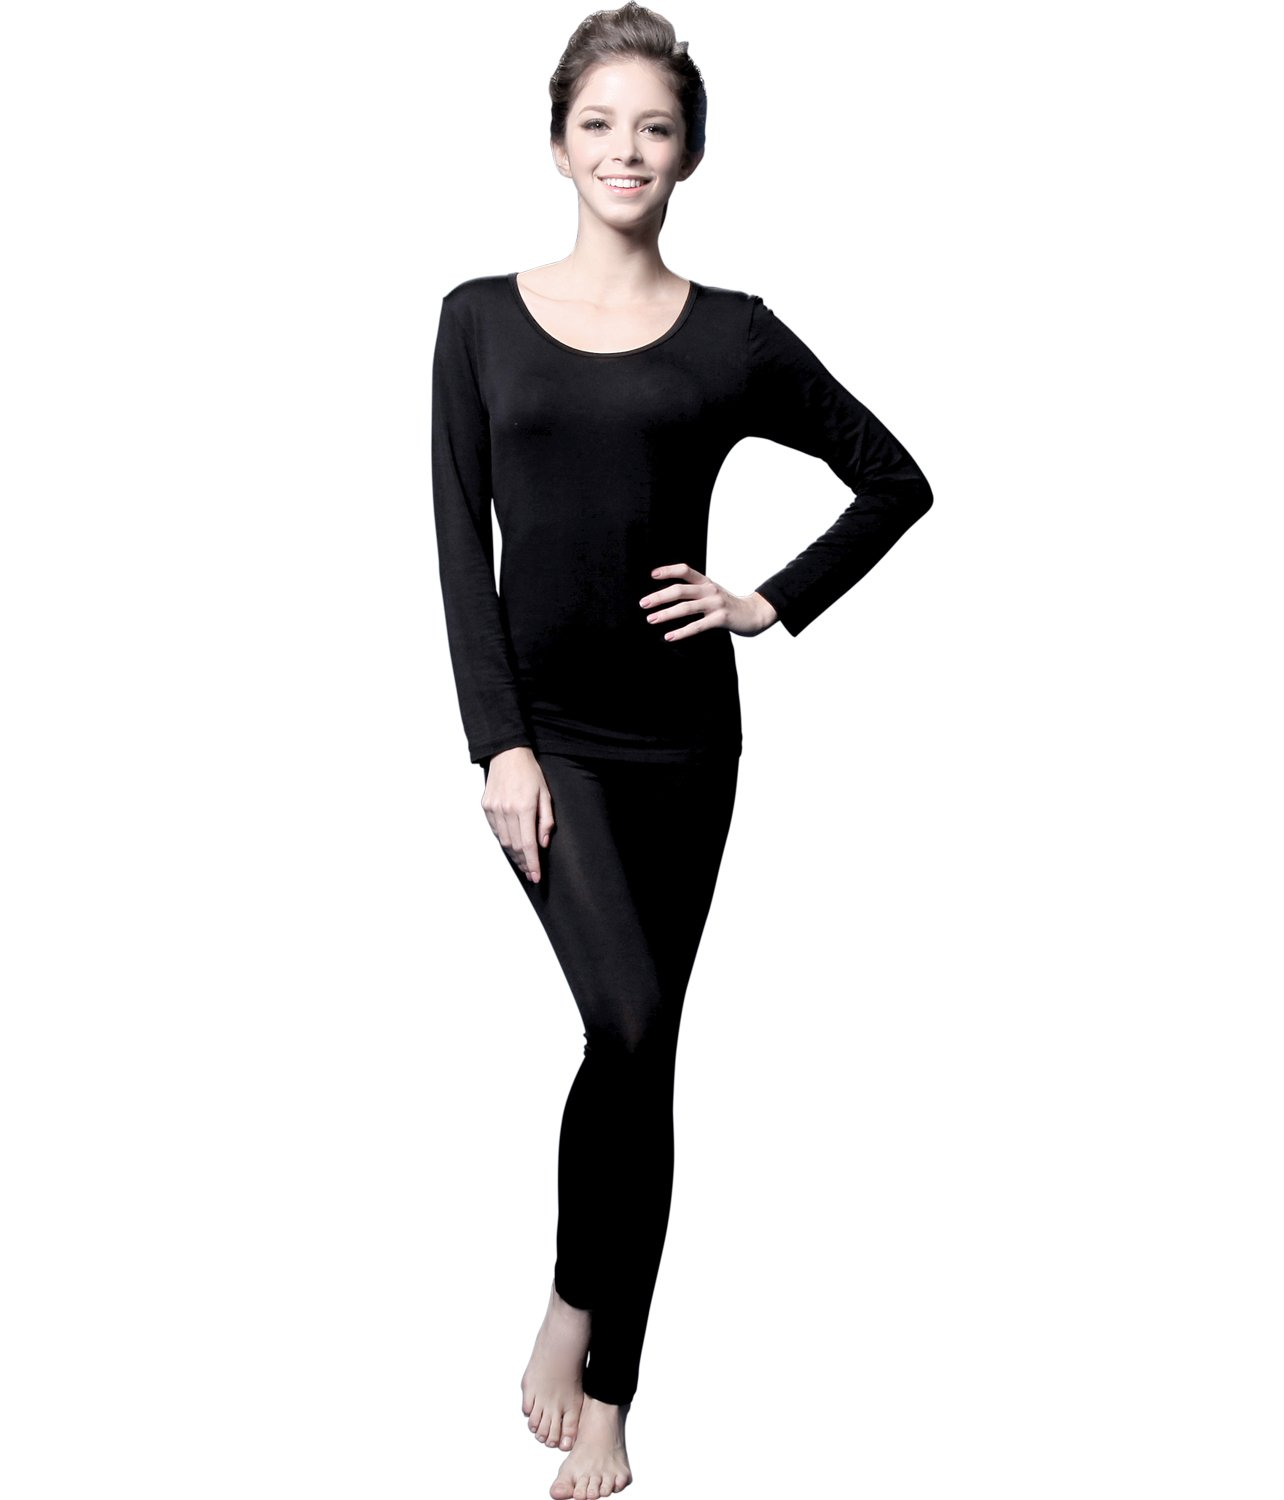 Giam Vico2 Feelvery Women's Natural Soft Tencel Long Johns Top & Bottom Thermal Underwear Set (Large, Black)